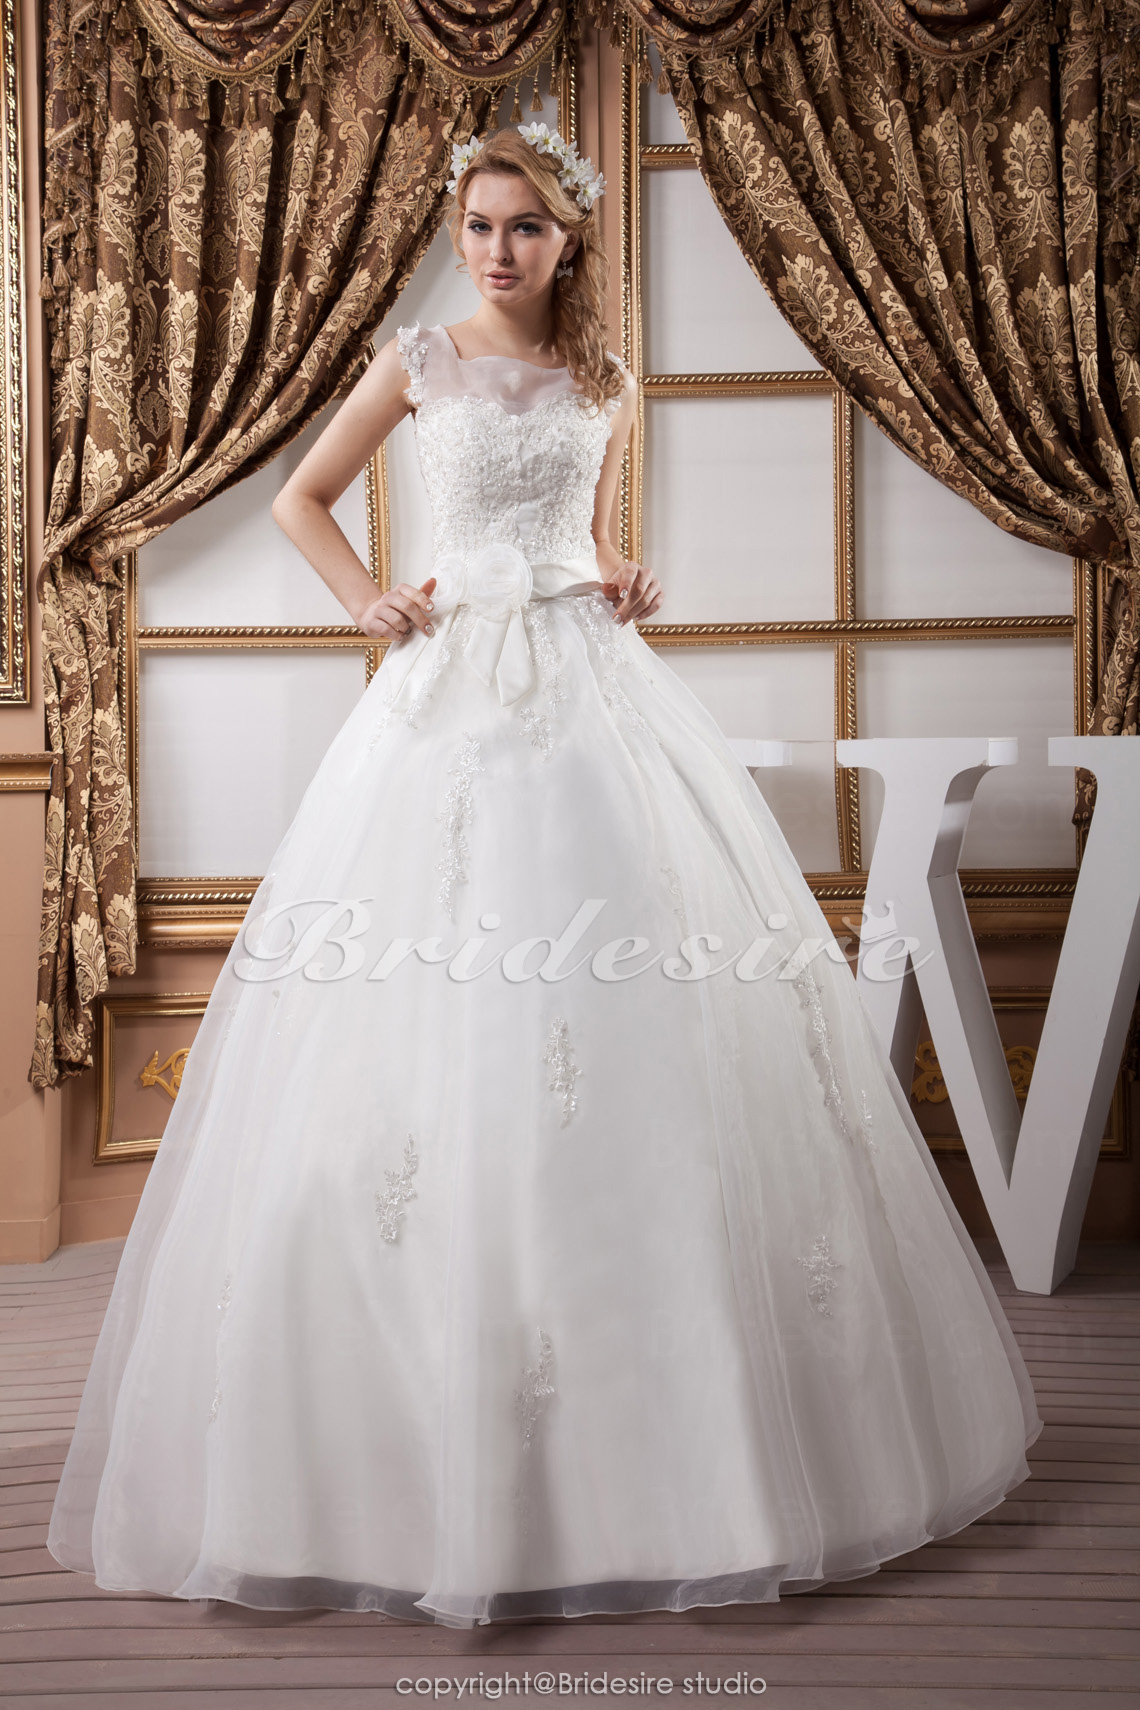 Princess Square Floor-length Sleeveless Satin Organza Wedding Dress